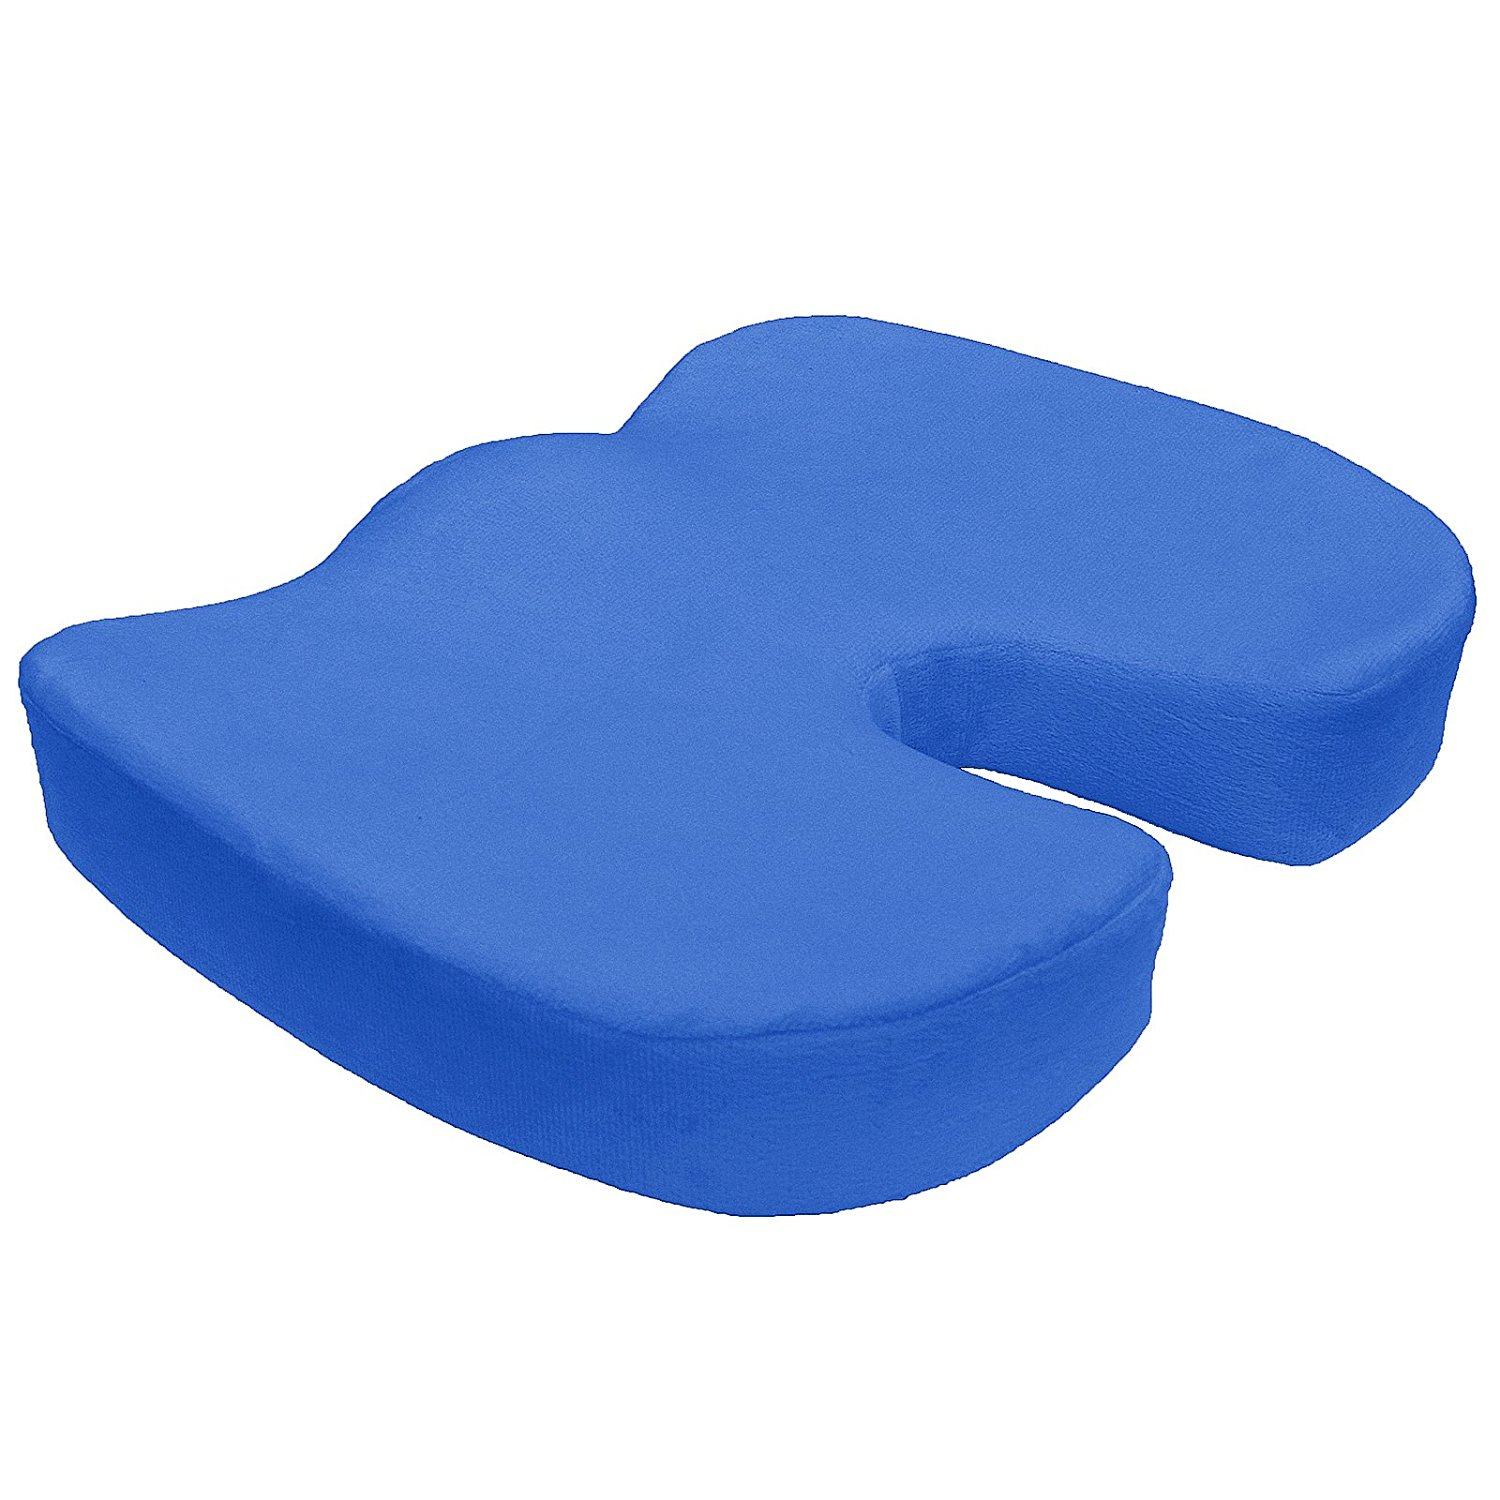 bookishbunny memory foam coccyx seat cushion support pillow sciatica pain relief car office chair